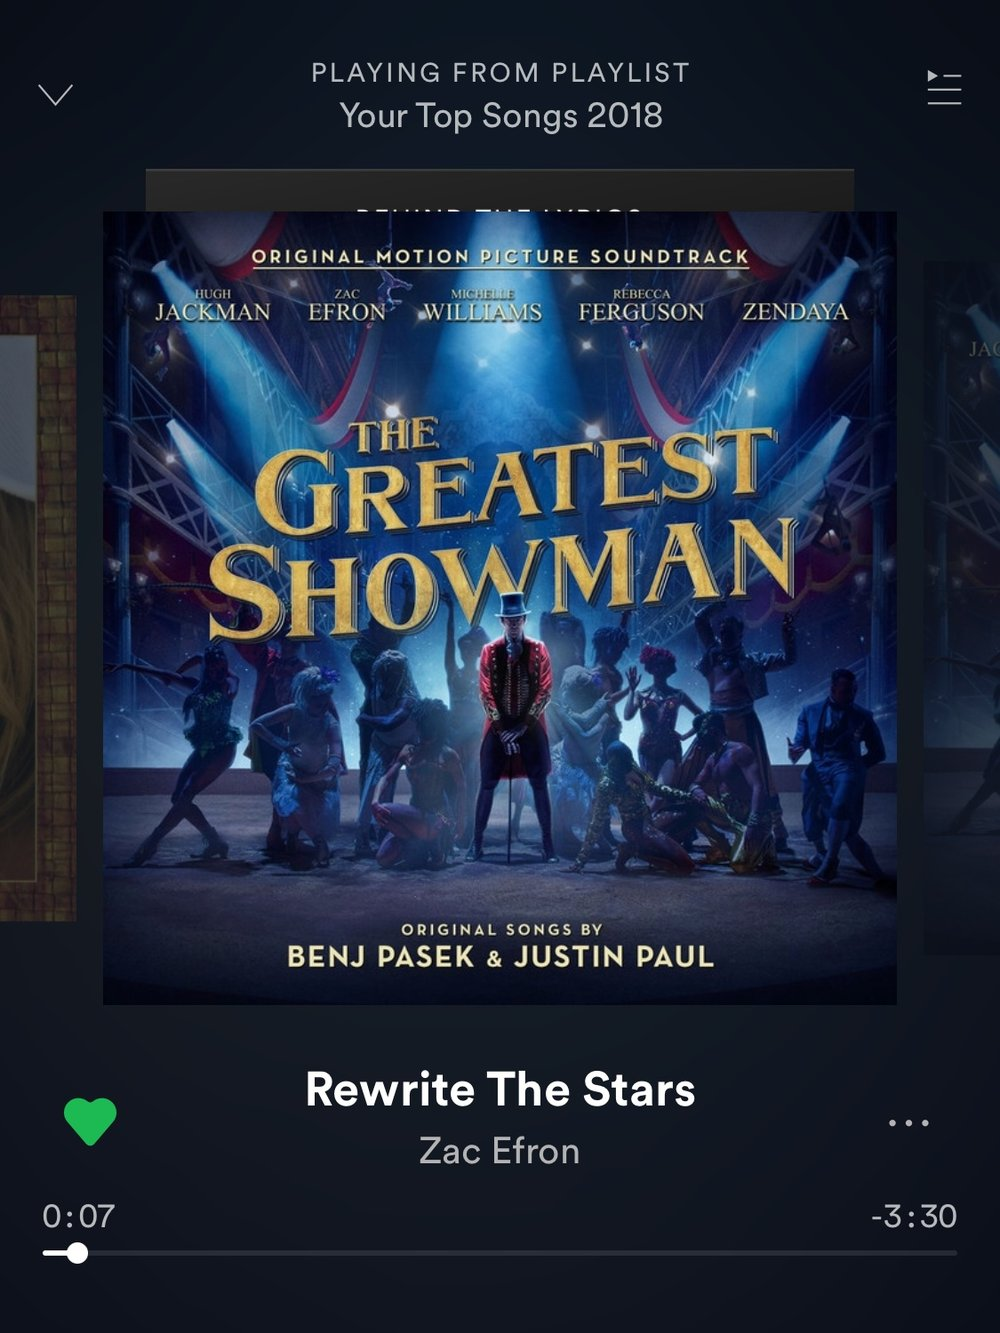 - I was late to the Greatest Showman party, but the second I watched it I was hooked. Three songs from the soundtrack were on my Spotify Top Songs of 2018. It's such a feel good movie with a great message and super catchy songs. Rewrite The Stars was my most played song on my Spotify hahaha.